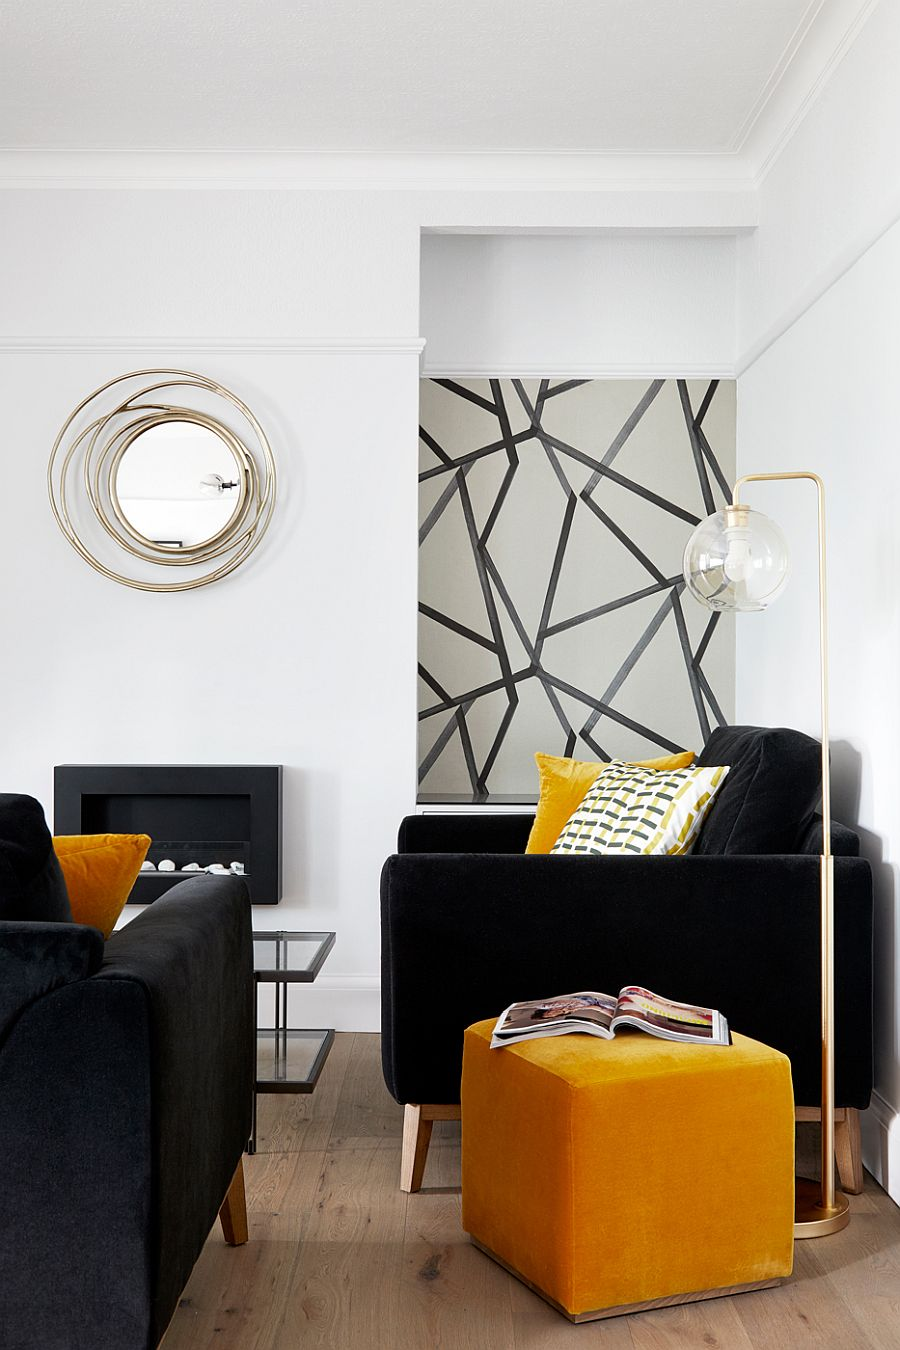 Dark sofa and club chairs coupled with yellow accents and side table in the living room